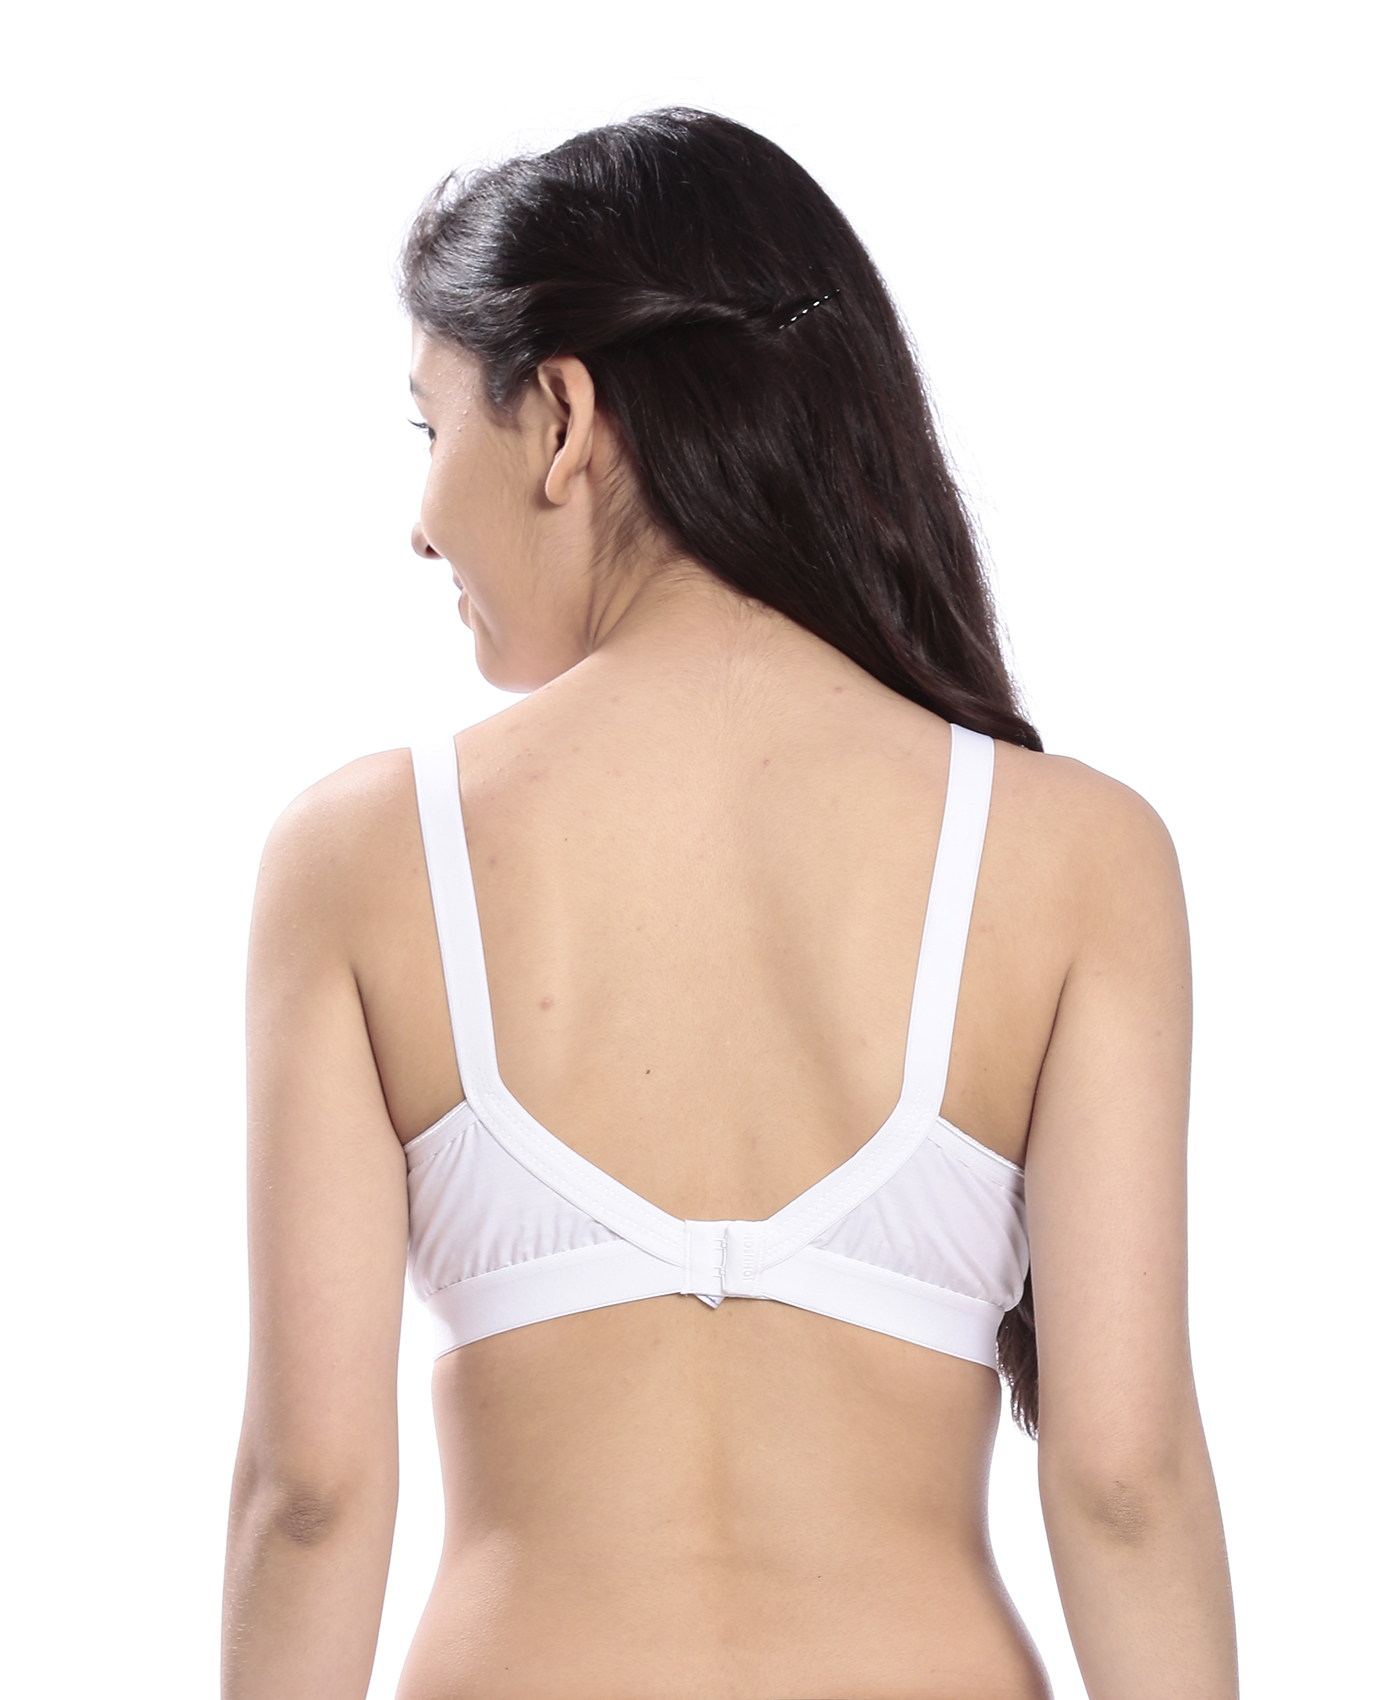 Johnson Shaan Full Coverage Non Padded Multi Color Bra... (Pack Of 3)